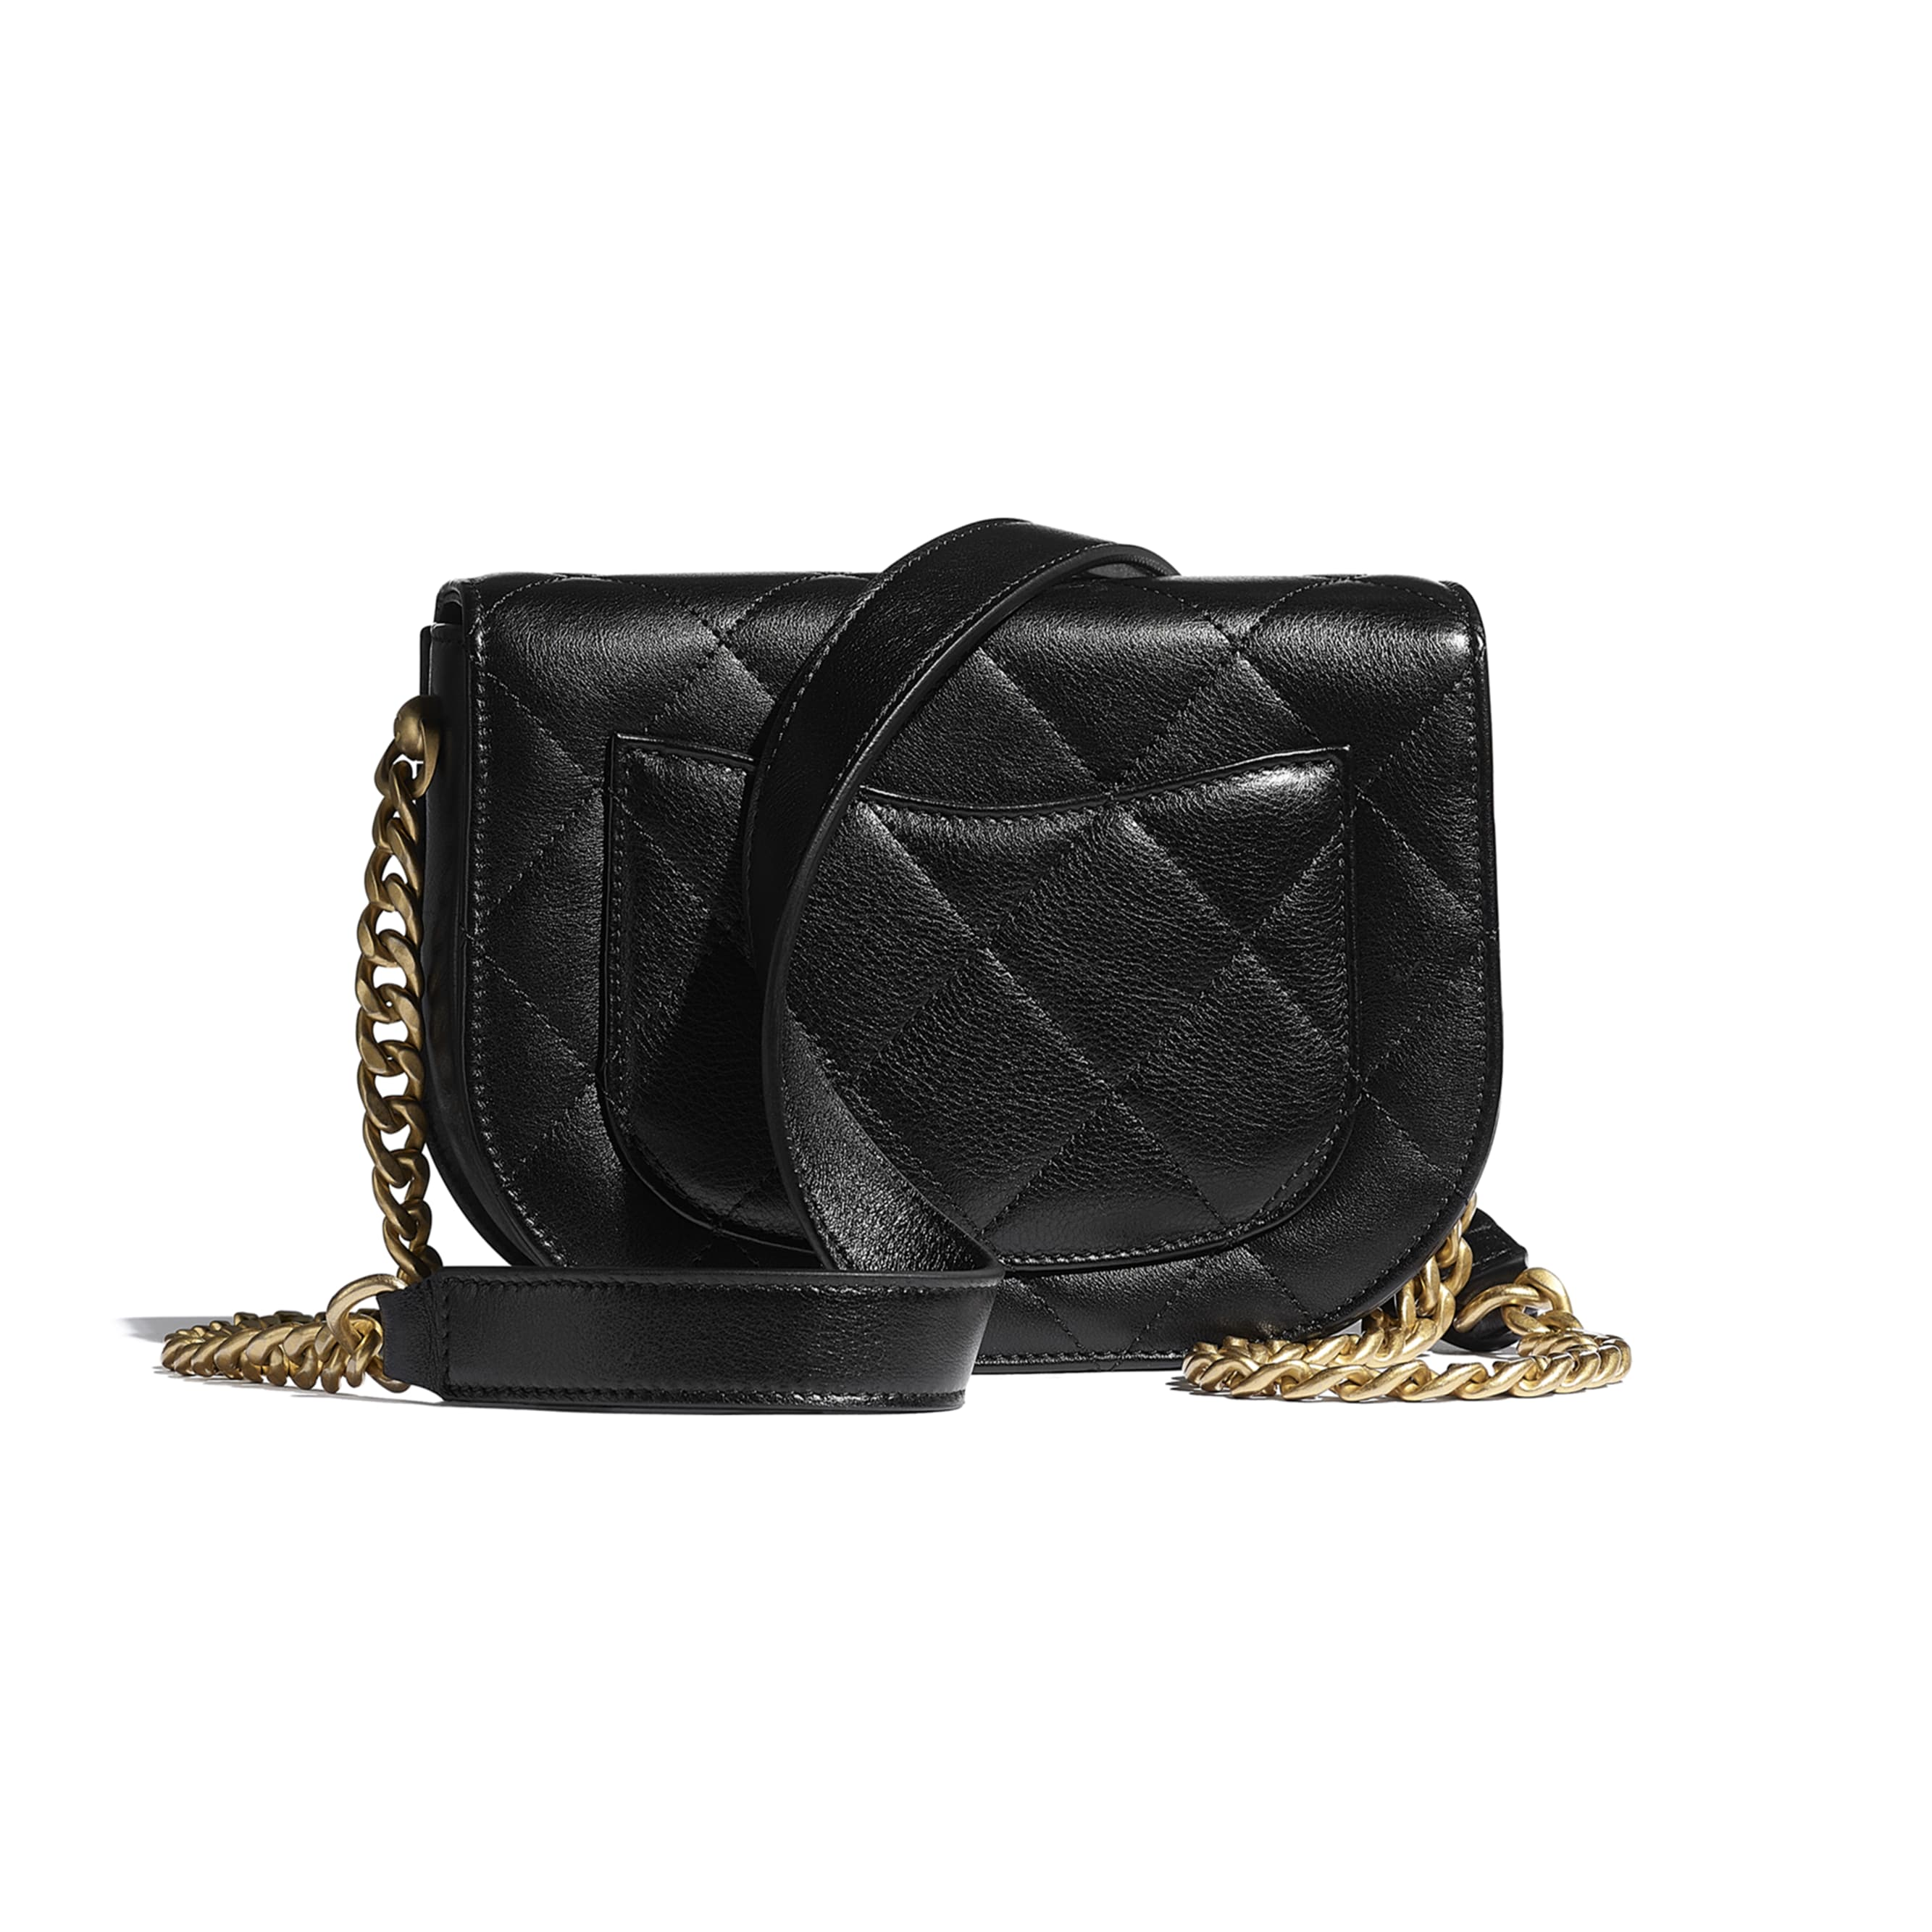 Mini Messenger Bag - Black - Calfskin & Gold-Tone Metal - CHANEL - Alternative view - see standard sized version